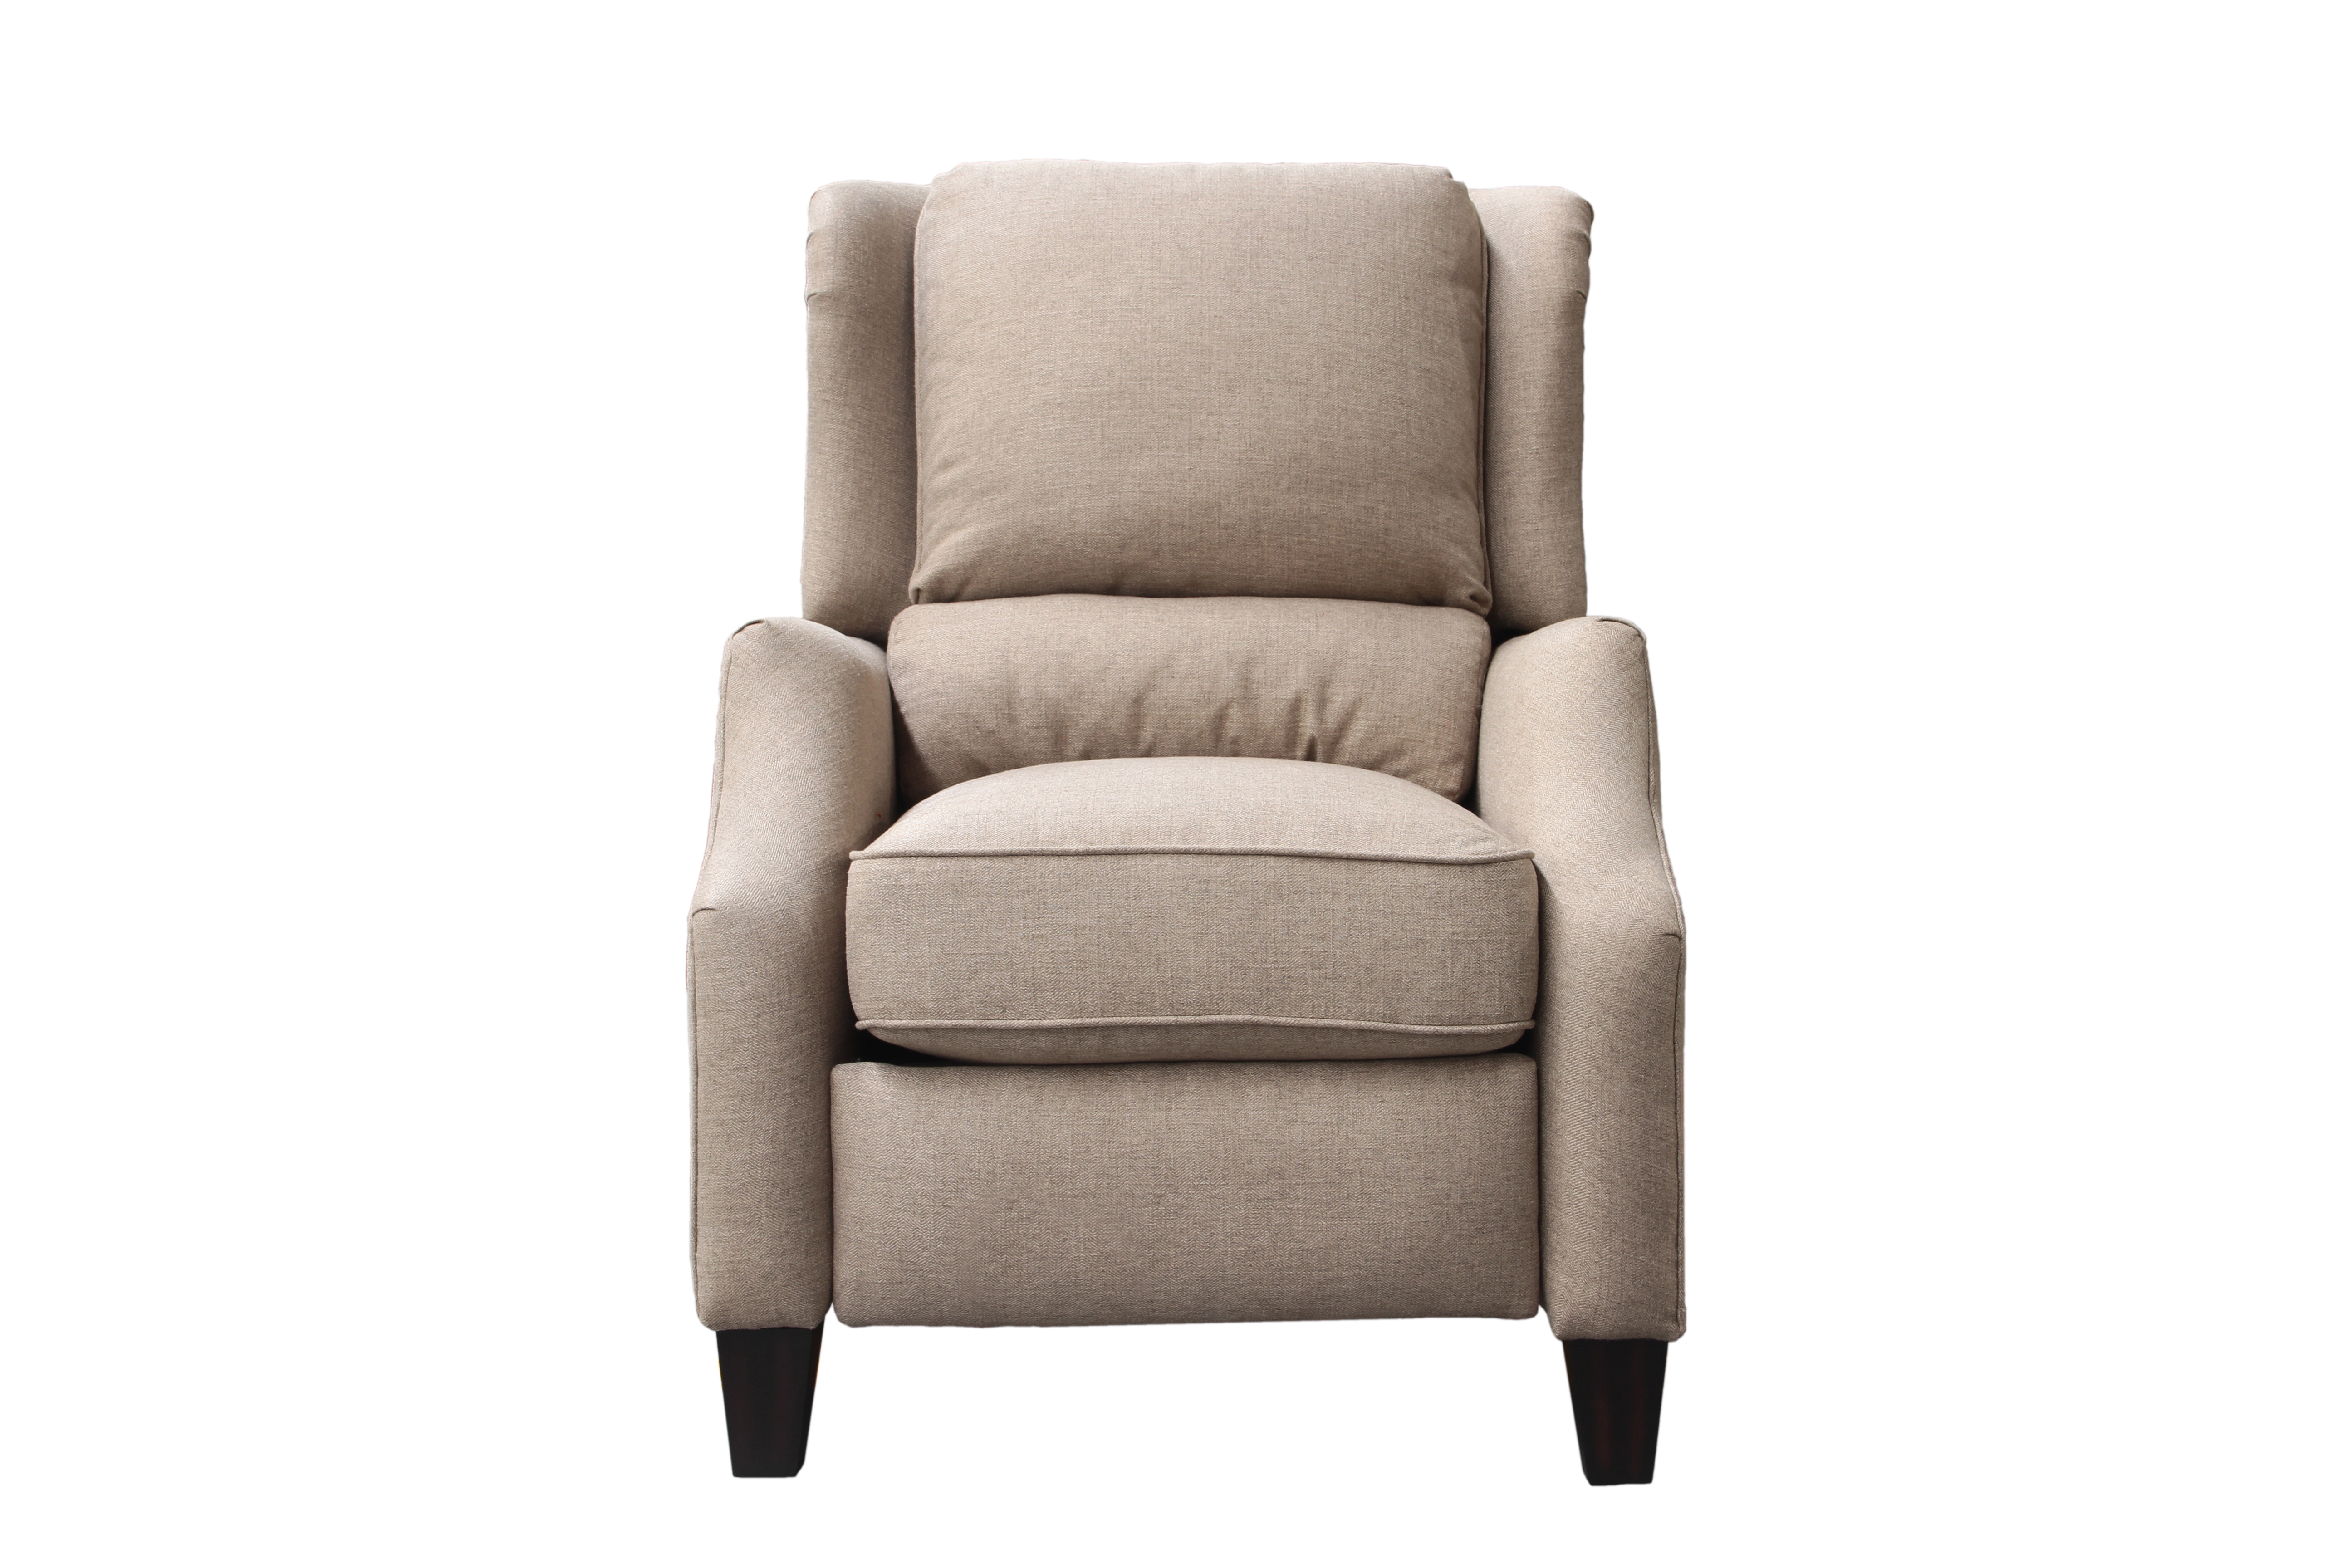 Cool Berkeley Recliner In Stock Fast Free Shipping Sofas And Dailytribune Chair Design For Home Dailytribuneorg